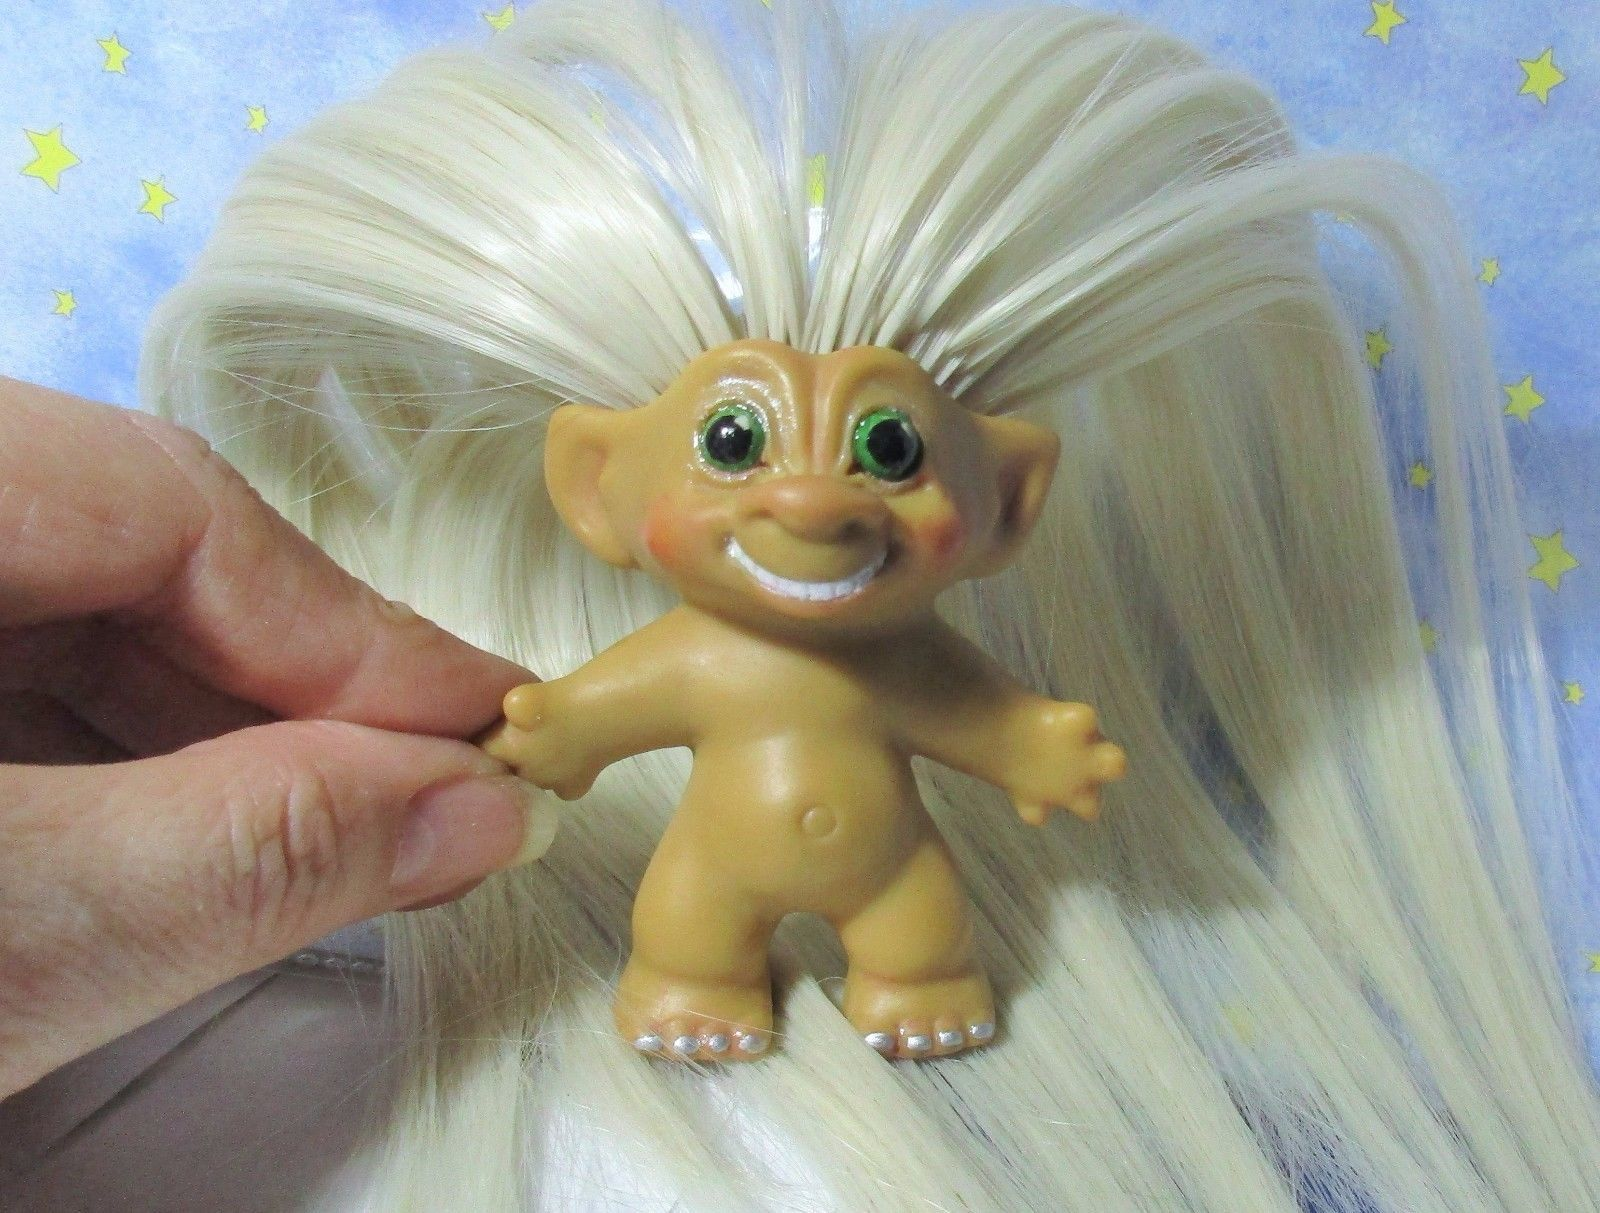 SMILING ROOTIE 3-IN Custom Troll Doll rooted vintage 60s Martian Moon Wand Alien image 6